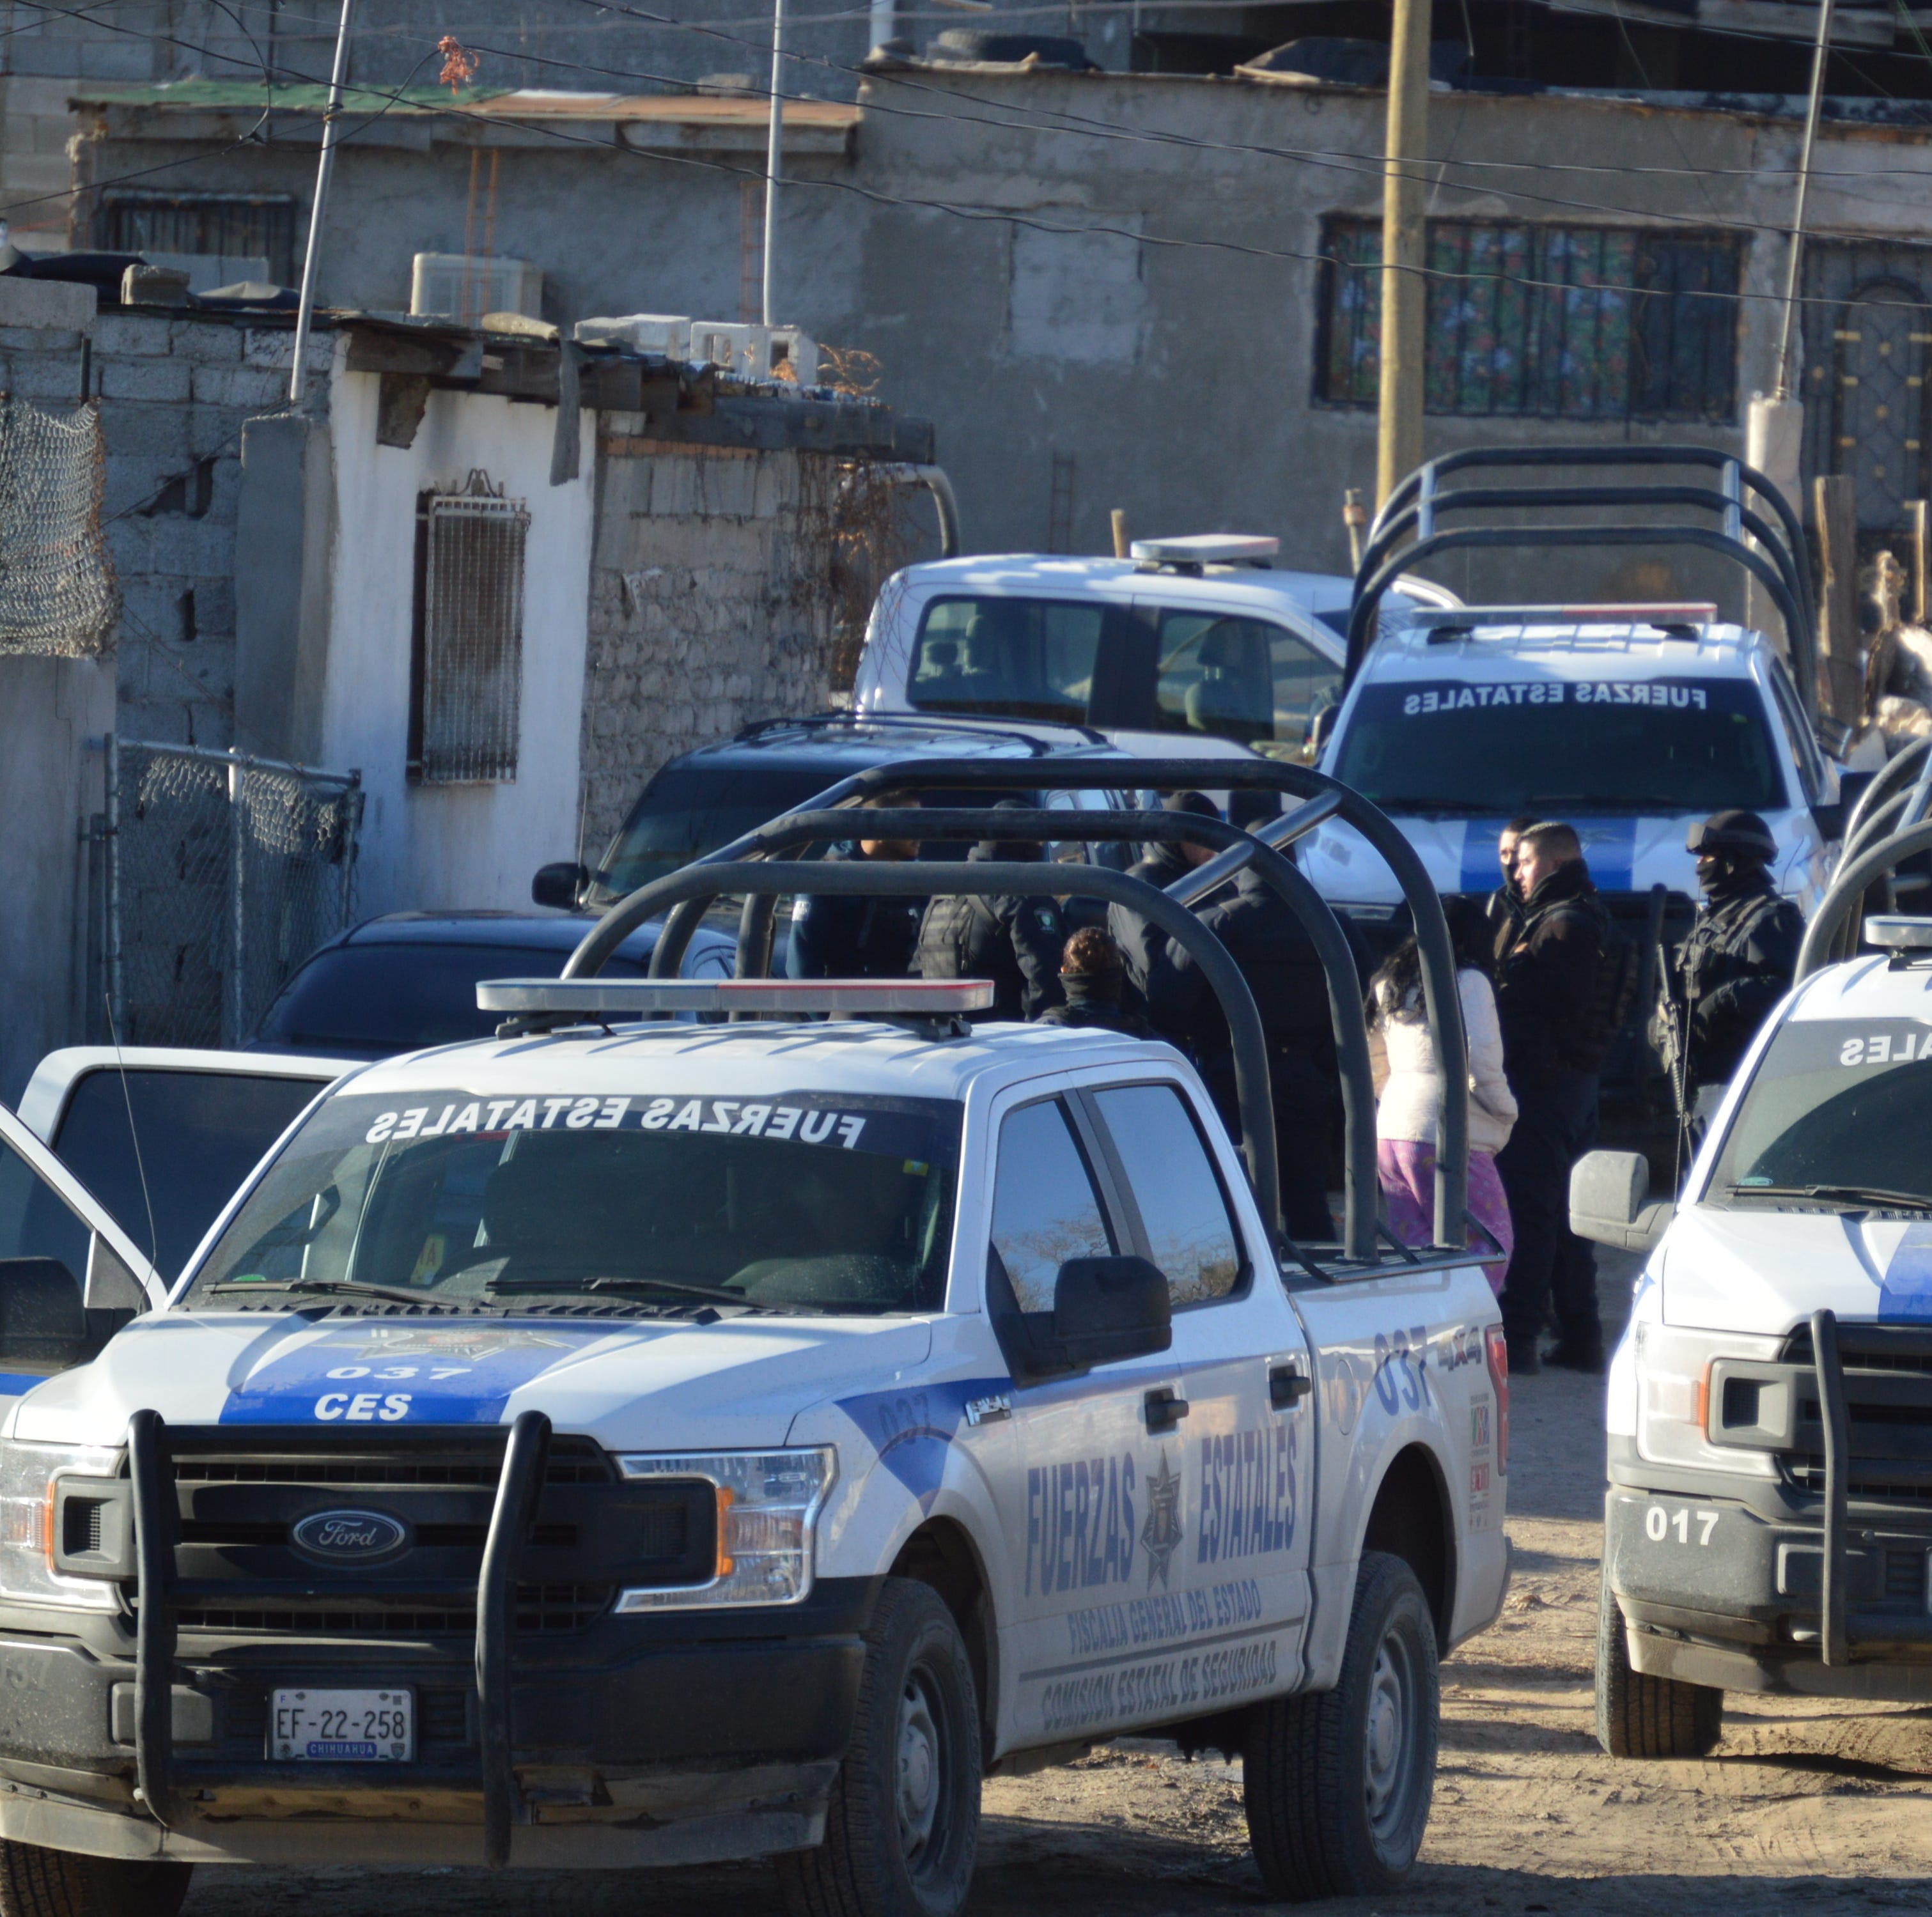 Authorities in Mexico, U.S. find suspected stash house for human trafficking